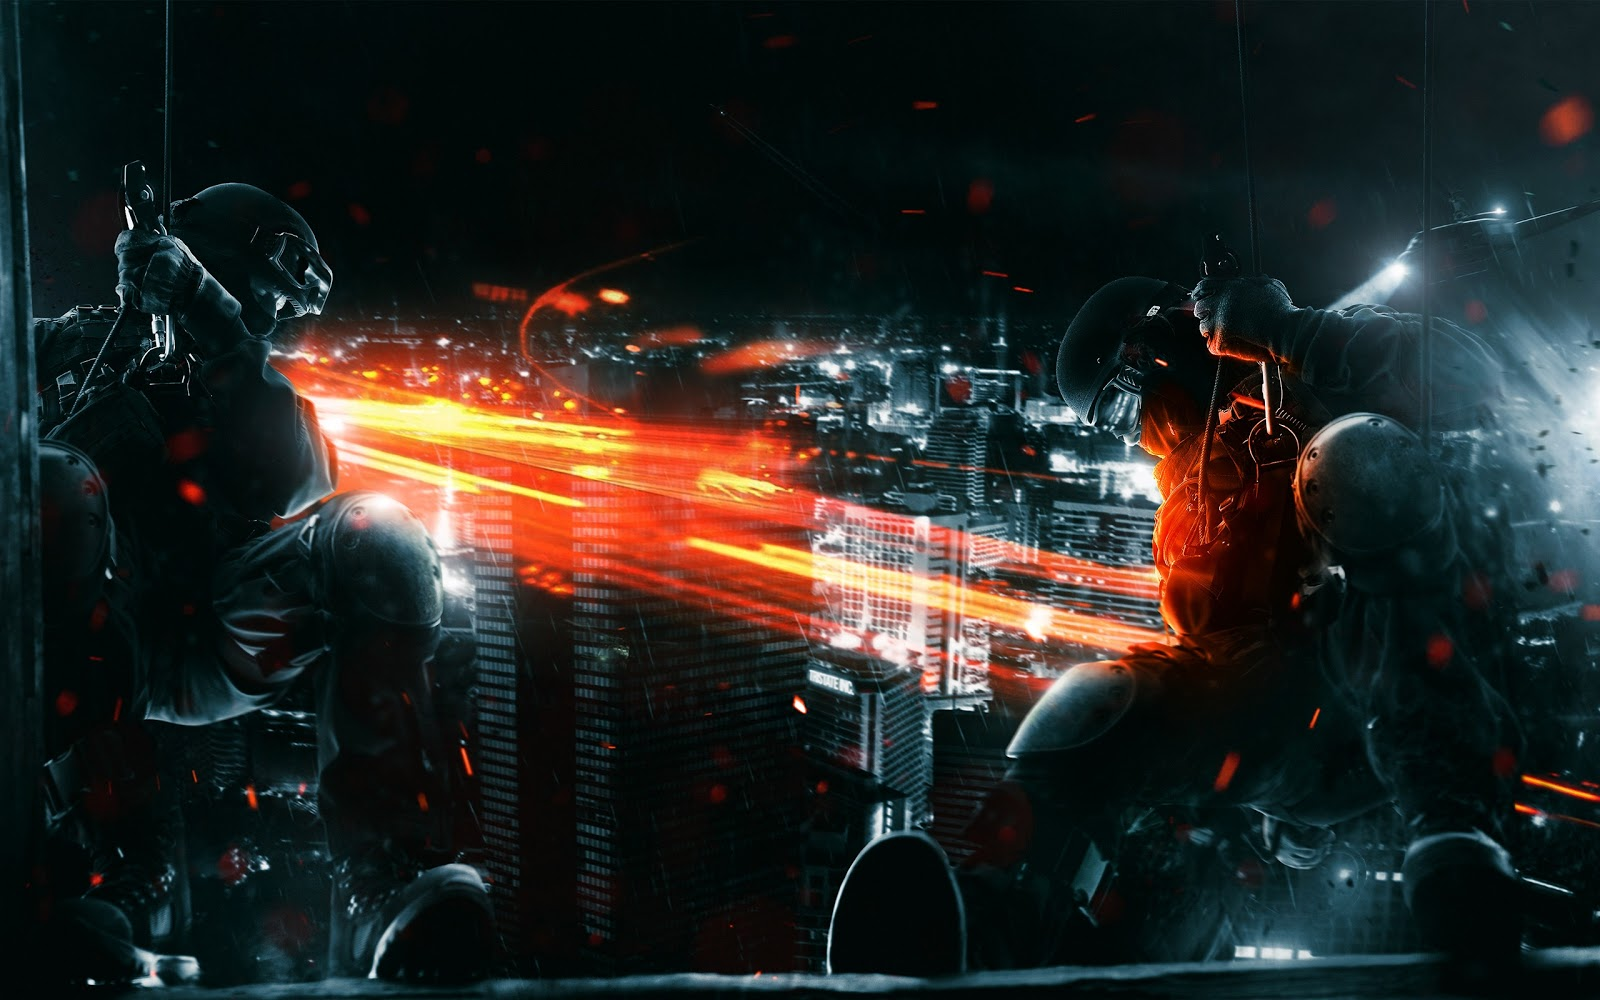 Battlefield 3 Game Wallpaper, Battle Field 3 PC Game Wallpaper, Battlefield 3 Spec Ops Wallpaper